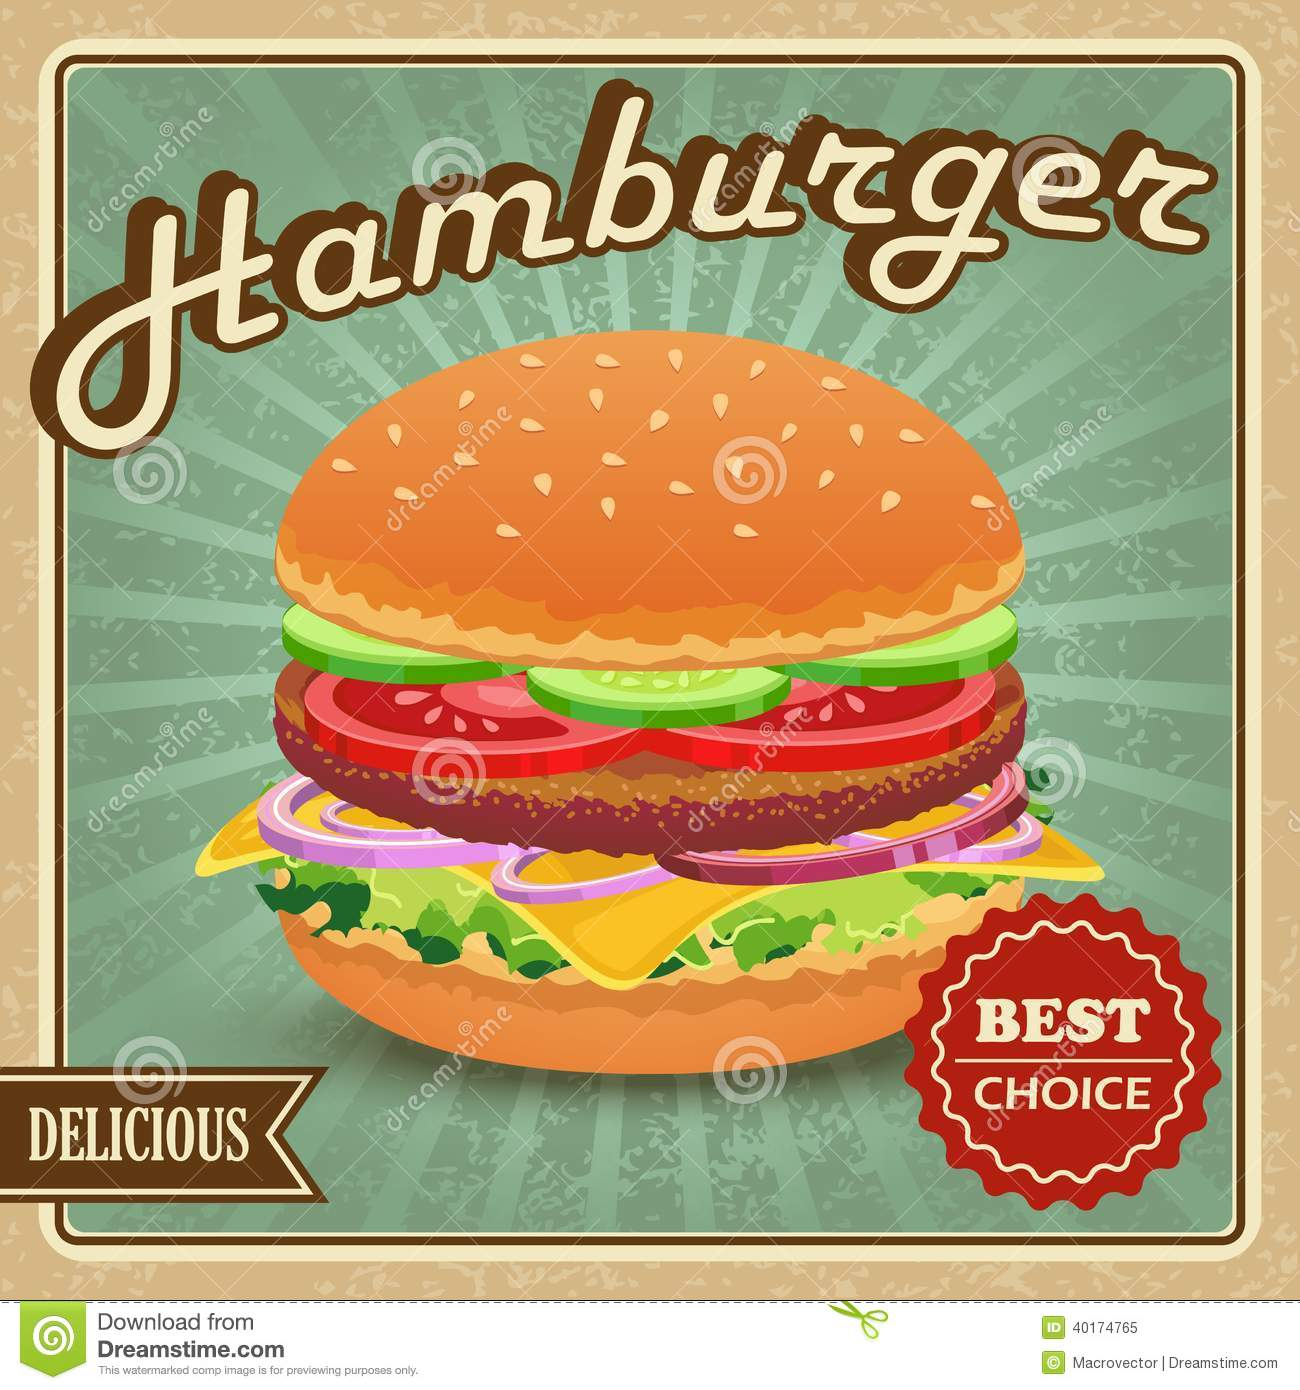 Delicious best choice retro hamburger food poster vector illustration.